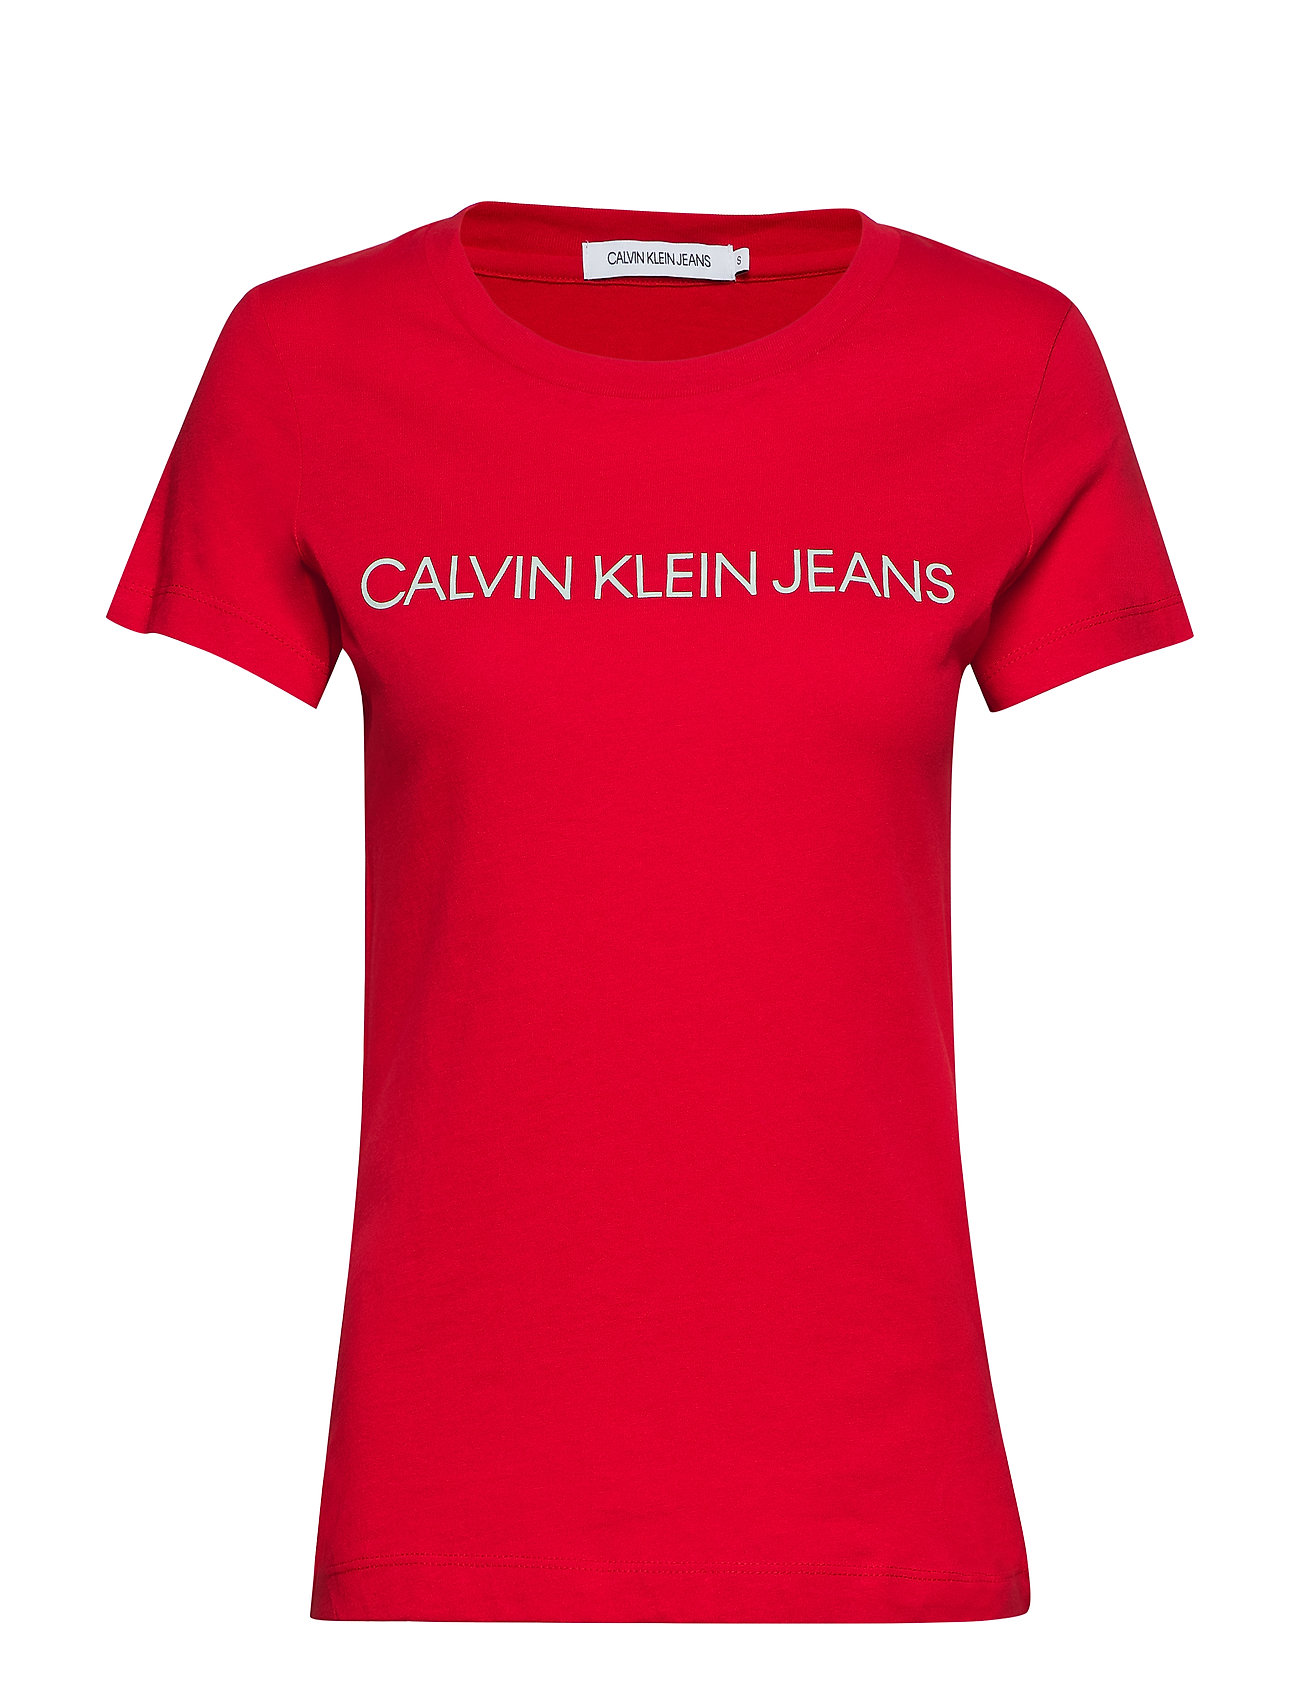 Calvin Klein Jeans INSTITUTIONAL LOGO SLIM FIT TEE - BARBADOS CHERRY/ SOOTHING SEA